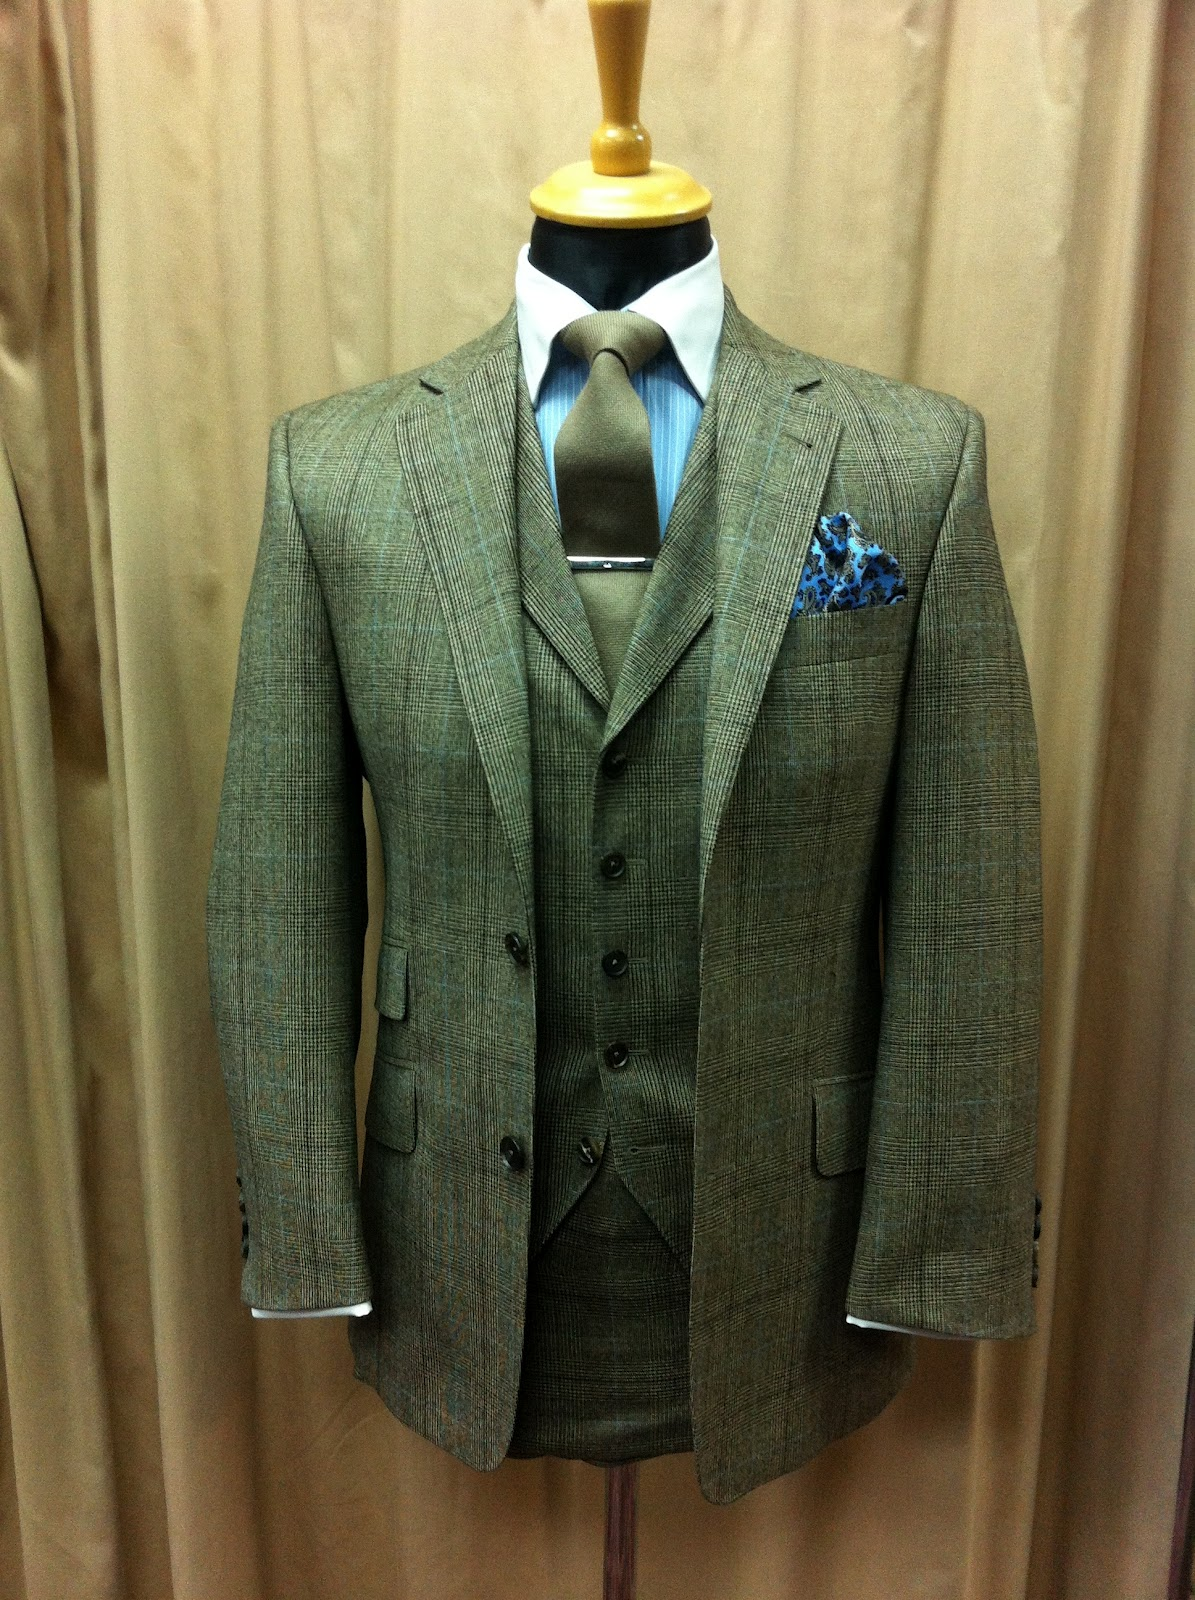 Beautiful Tweed Suits For Weddings Contemporary - Styles & Ideas ...